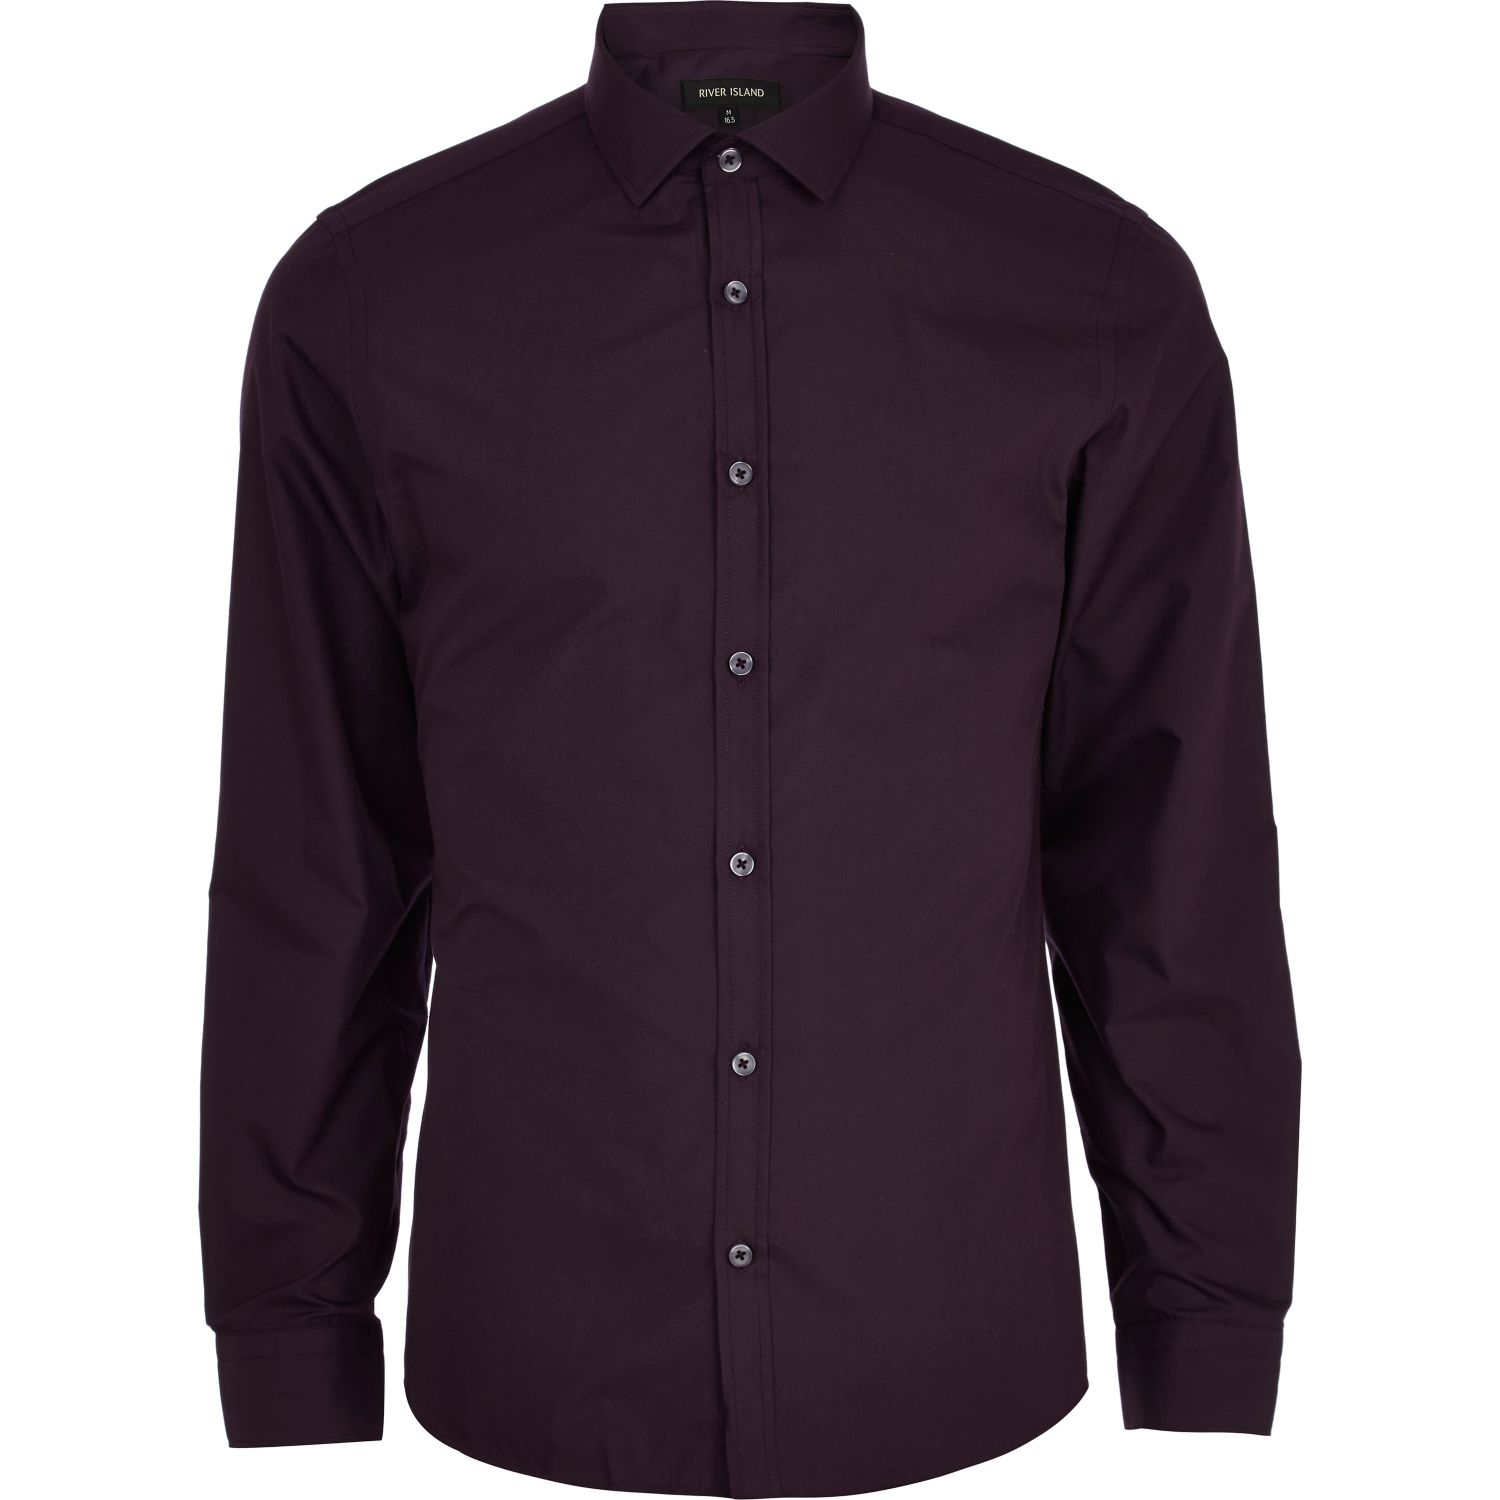 Find great deals on Mens Purple Dress Shirts Clothing at Kohl's today! Sponsored Links Outside companies pay to advertise via these links when specific phrases and words are searched.